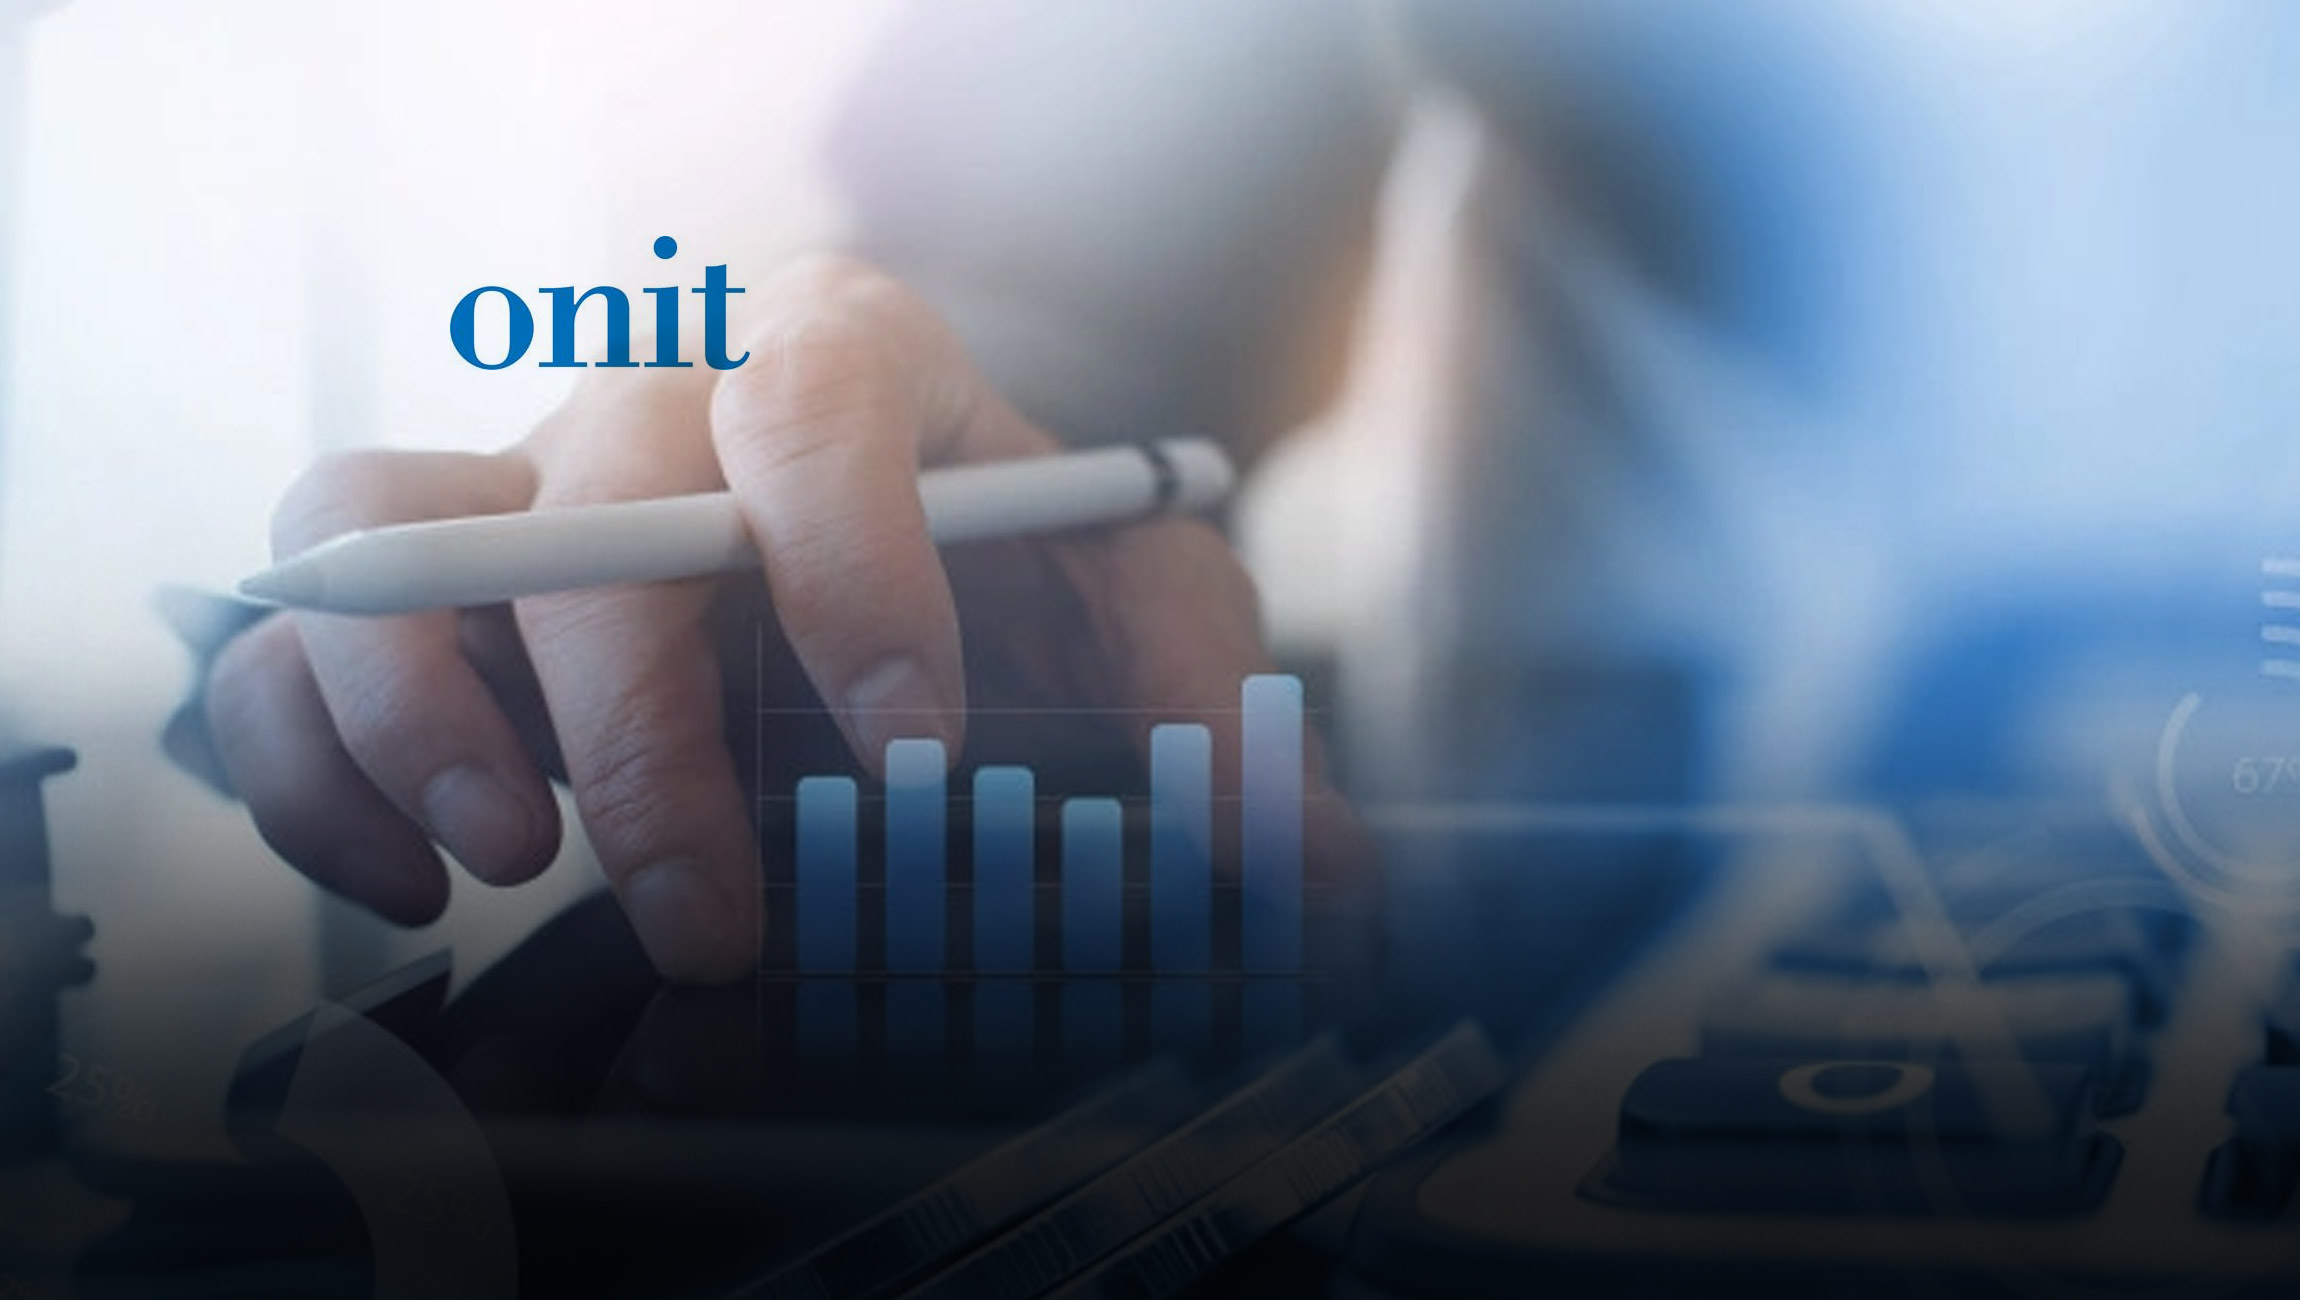 Onit-Continues-High-Growth-Trajectory_-Attaining-Important-Milestones-in-2020-and-Positioned-for-Greater-Growth-in-2021